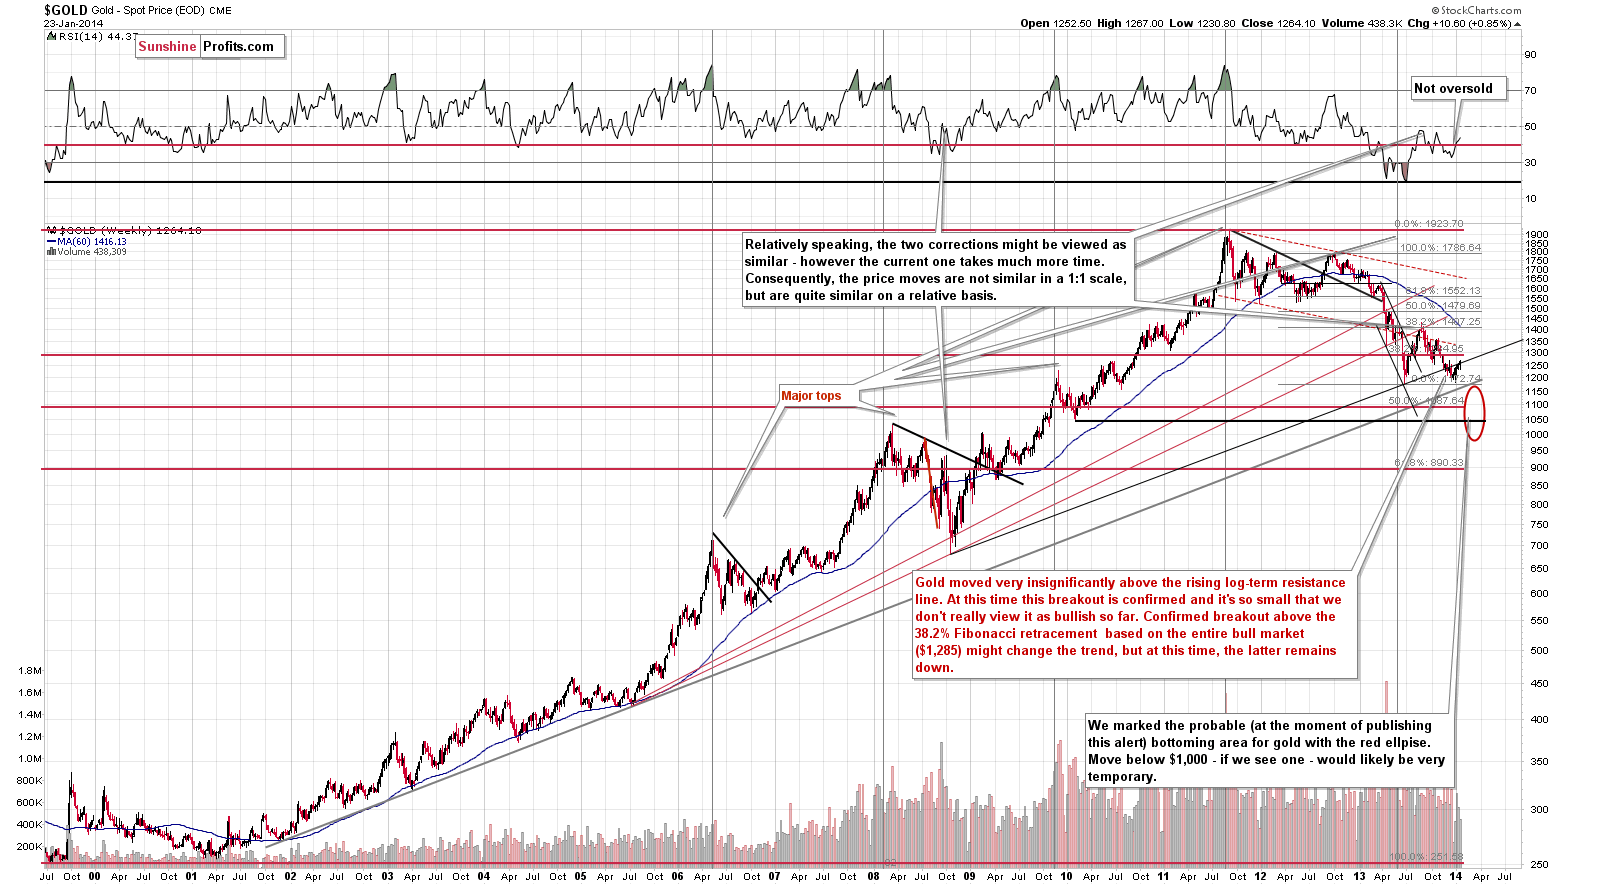 Long-term Gold price chart - Gold spot price